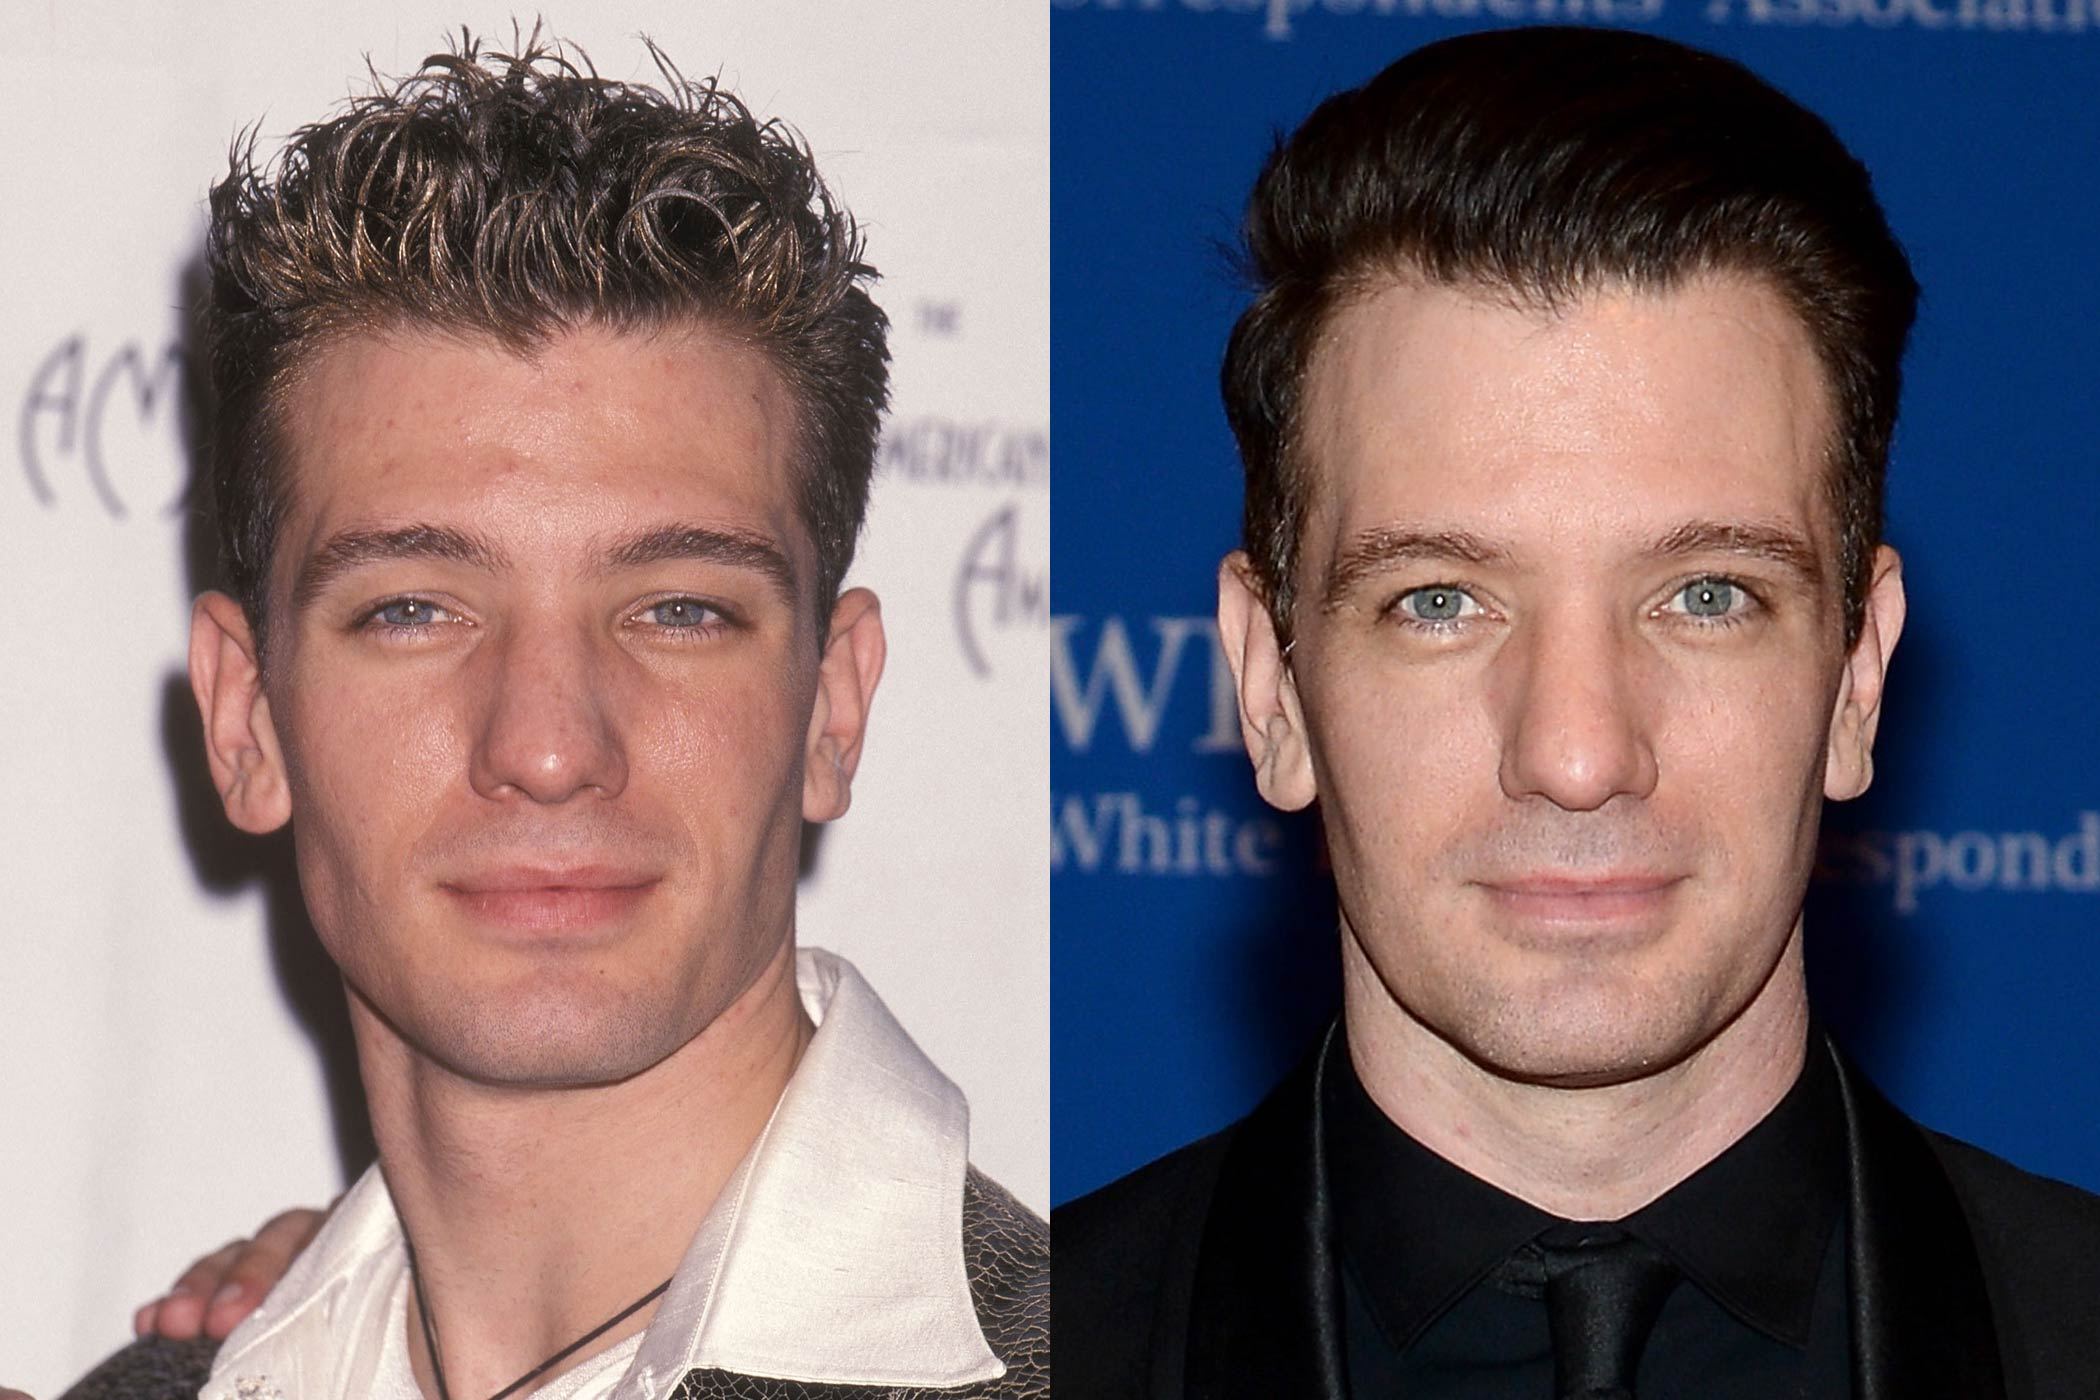 <strong>JC Chasez (NSYNC)</strong>